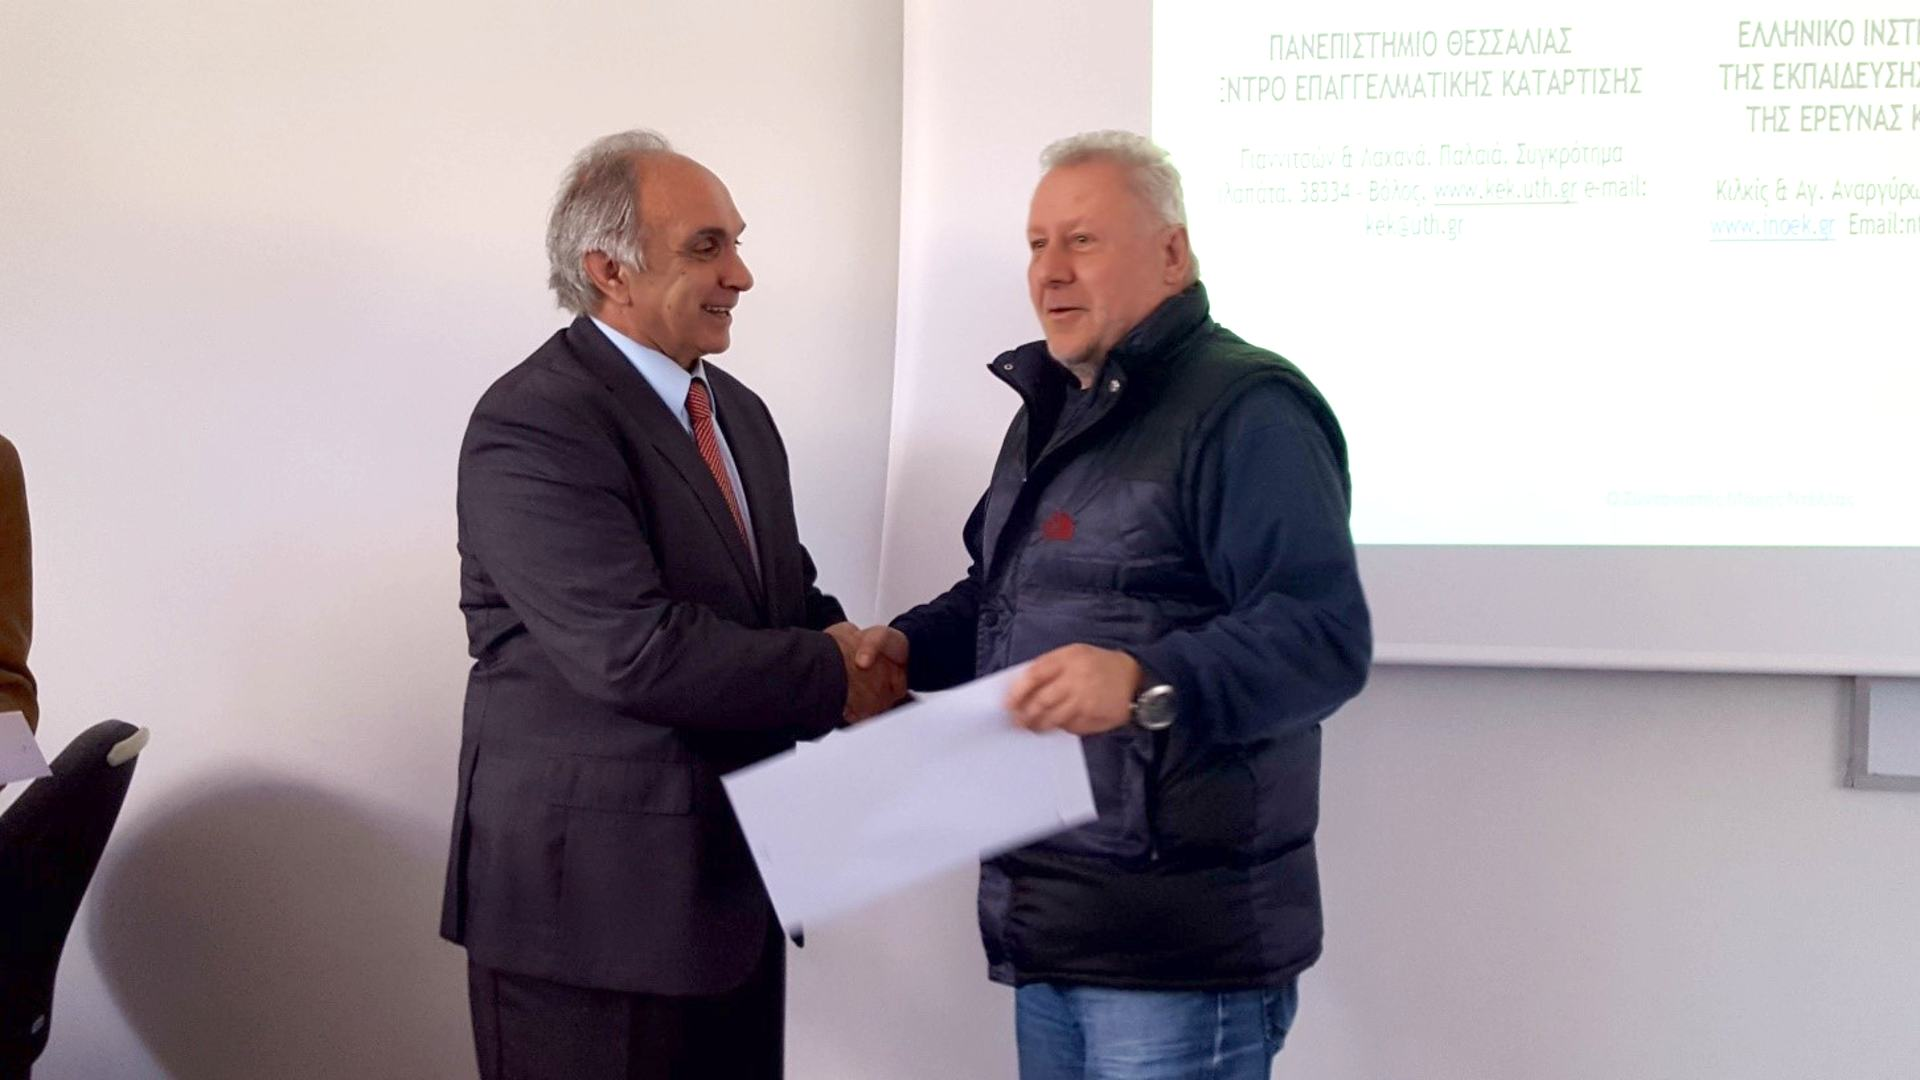 Delivery of the certificate to Mr. Dimitrios Kyriopoulos